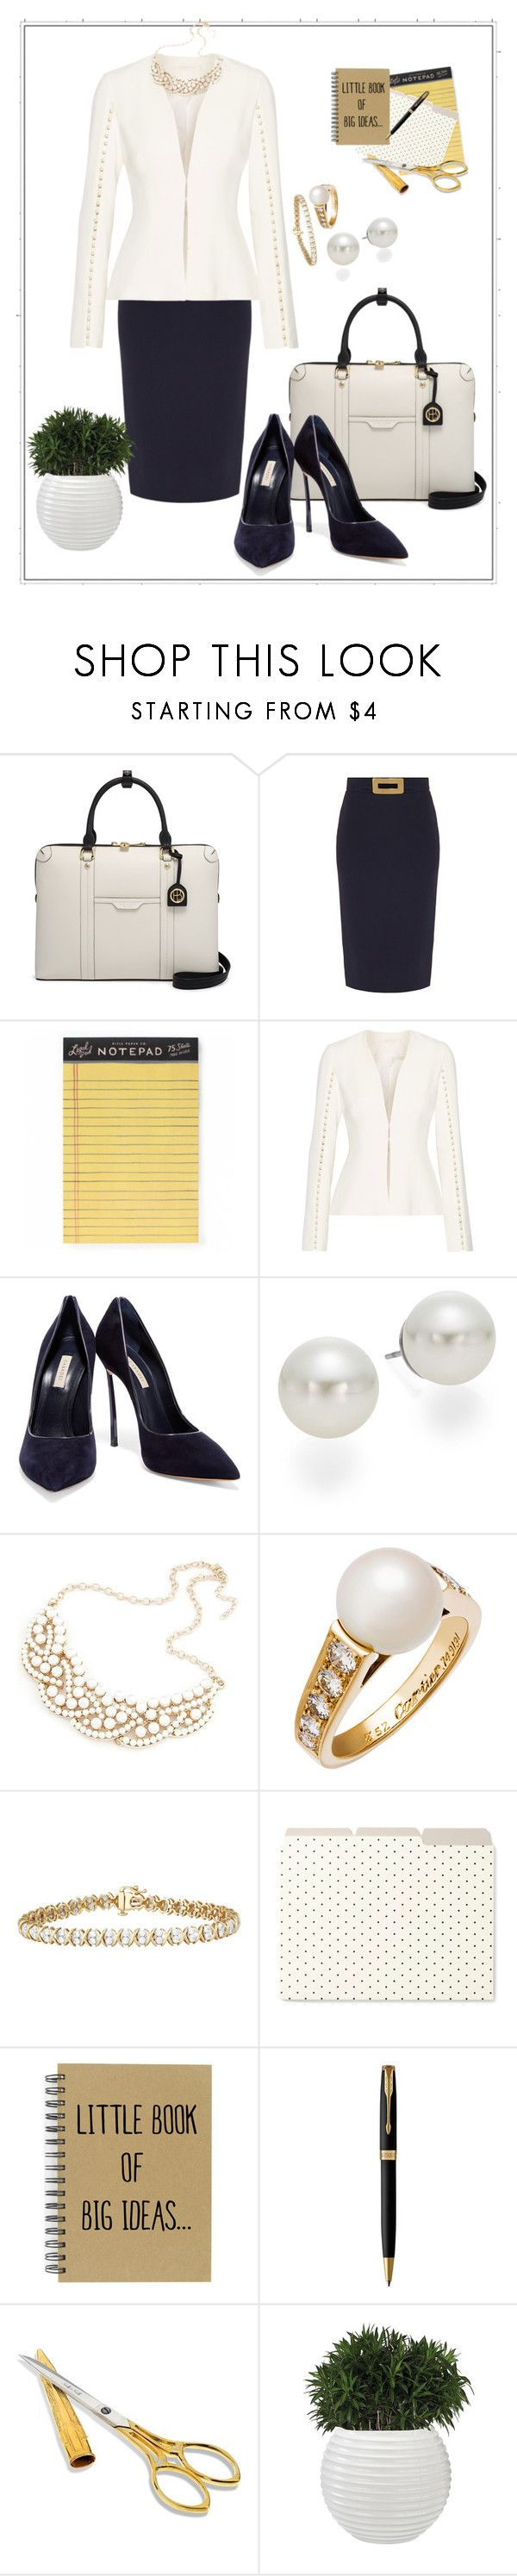 """Workweek Wednesday- 4-26-17"" by mary-kay-de-jesus ❤ liked on Polyvore featuring Henri Bendel, Goat, Rifle Paper Co, Jonathan Simkhai, Casadei, AK Anne Klein, Cartier, Kate Spade and Parker"